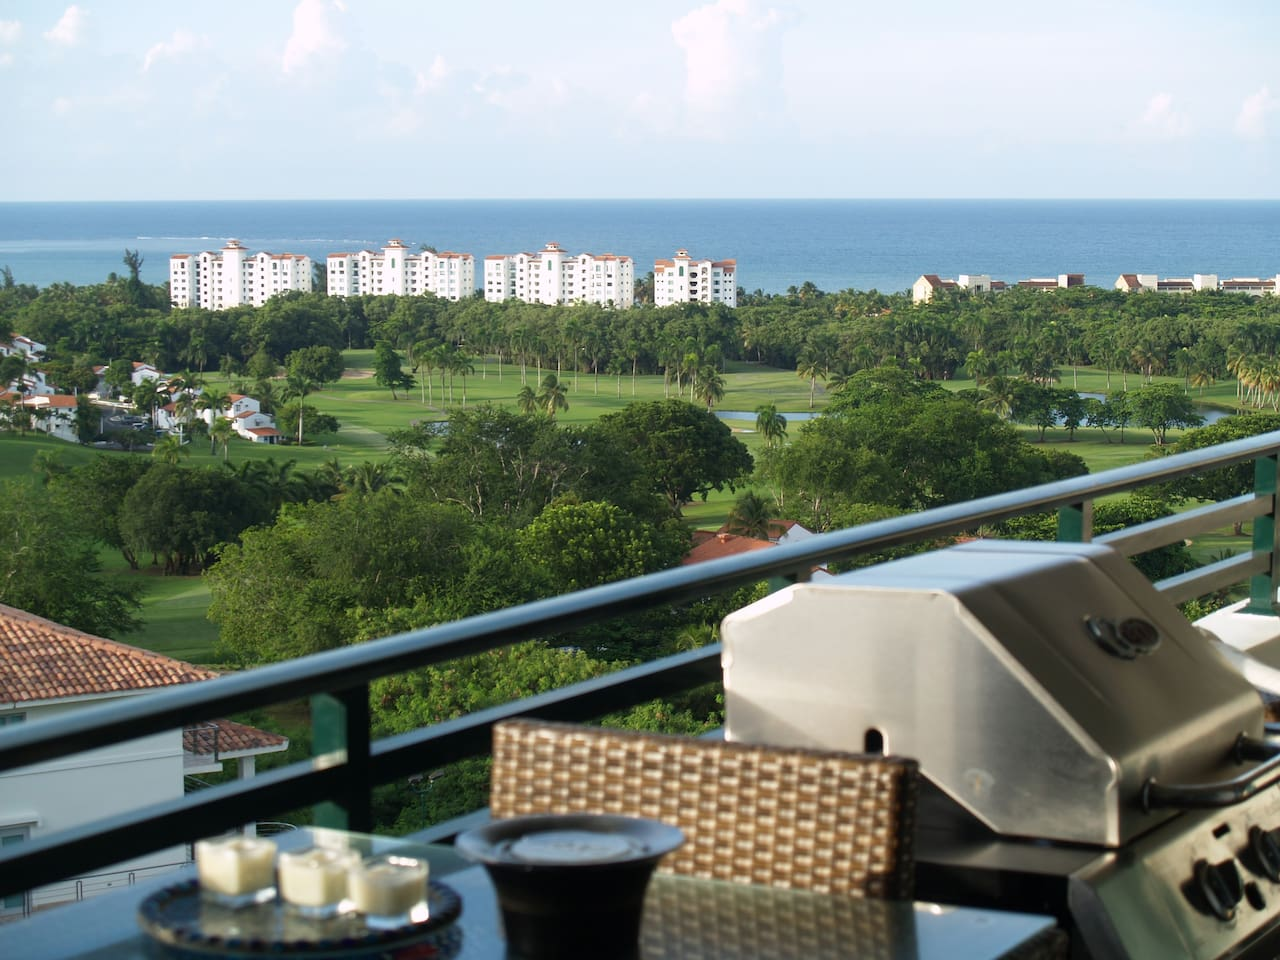 Breathtaking View from the Balcony, Gas grill for your grilling enjoyment